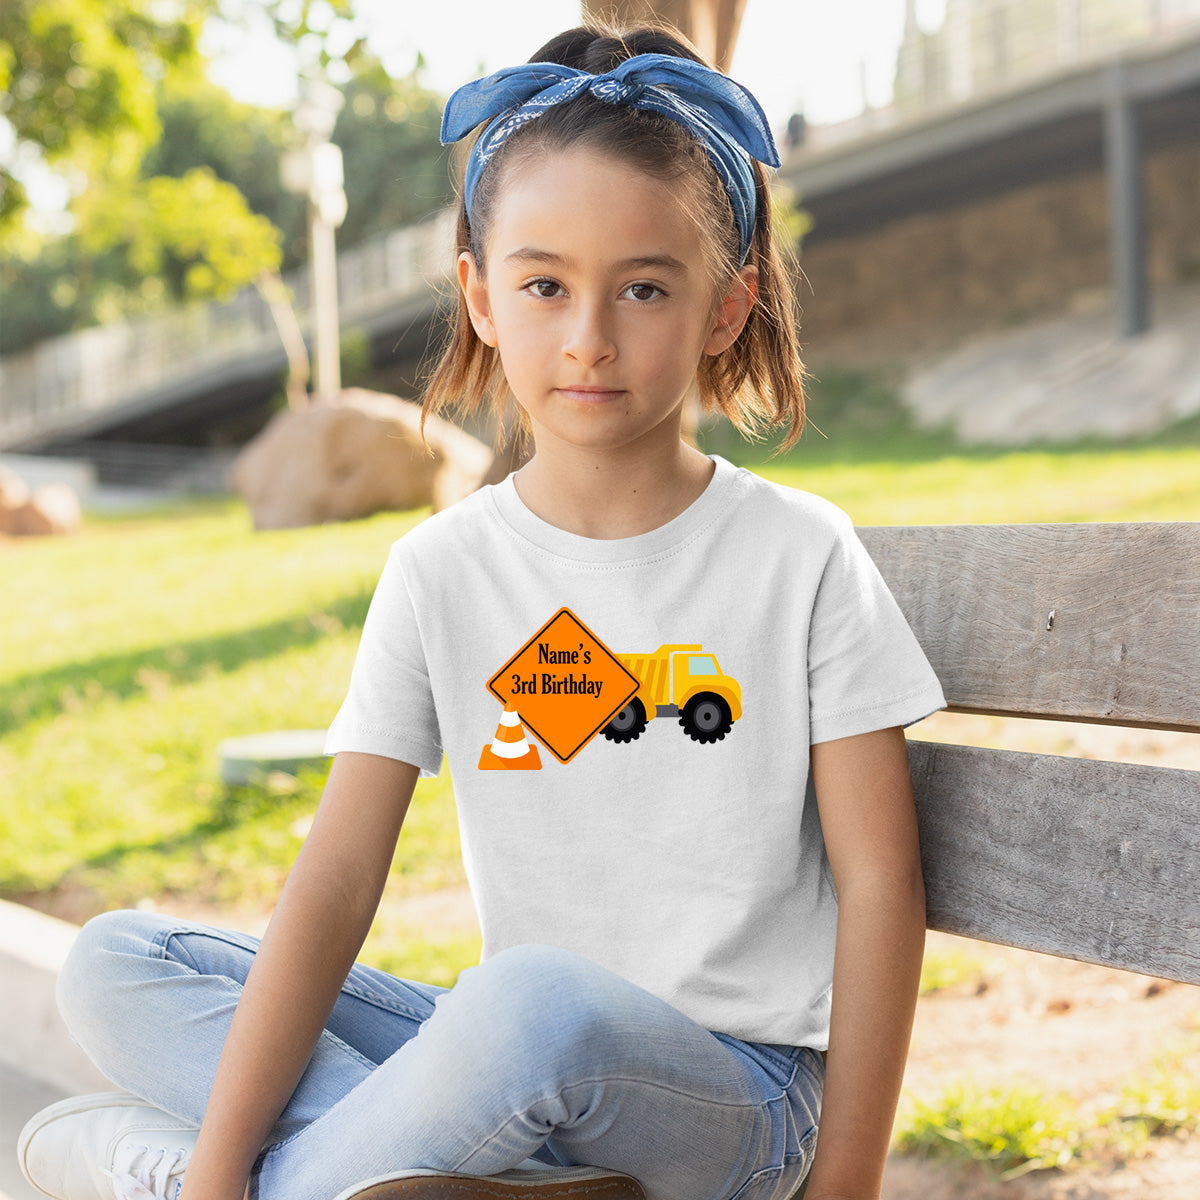 Sprinklecart Customized Construction Vehicle Birthday T Shirt | Personalized 3rd Birthday Dress